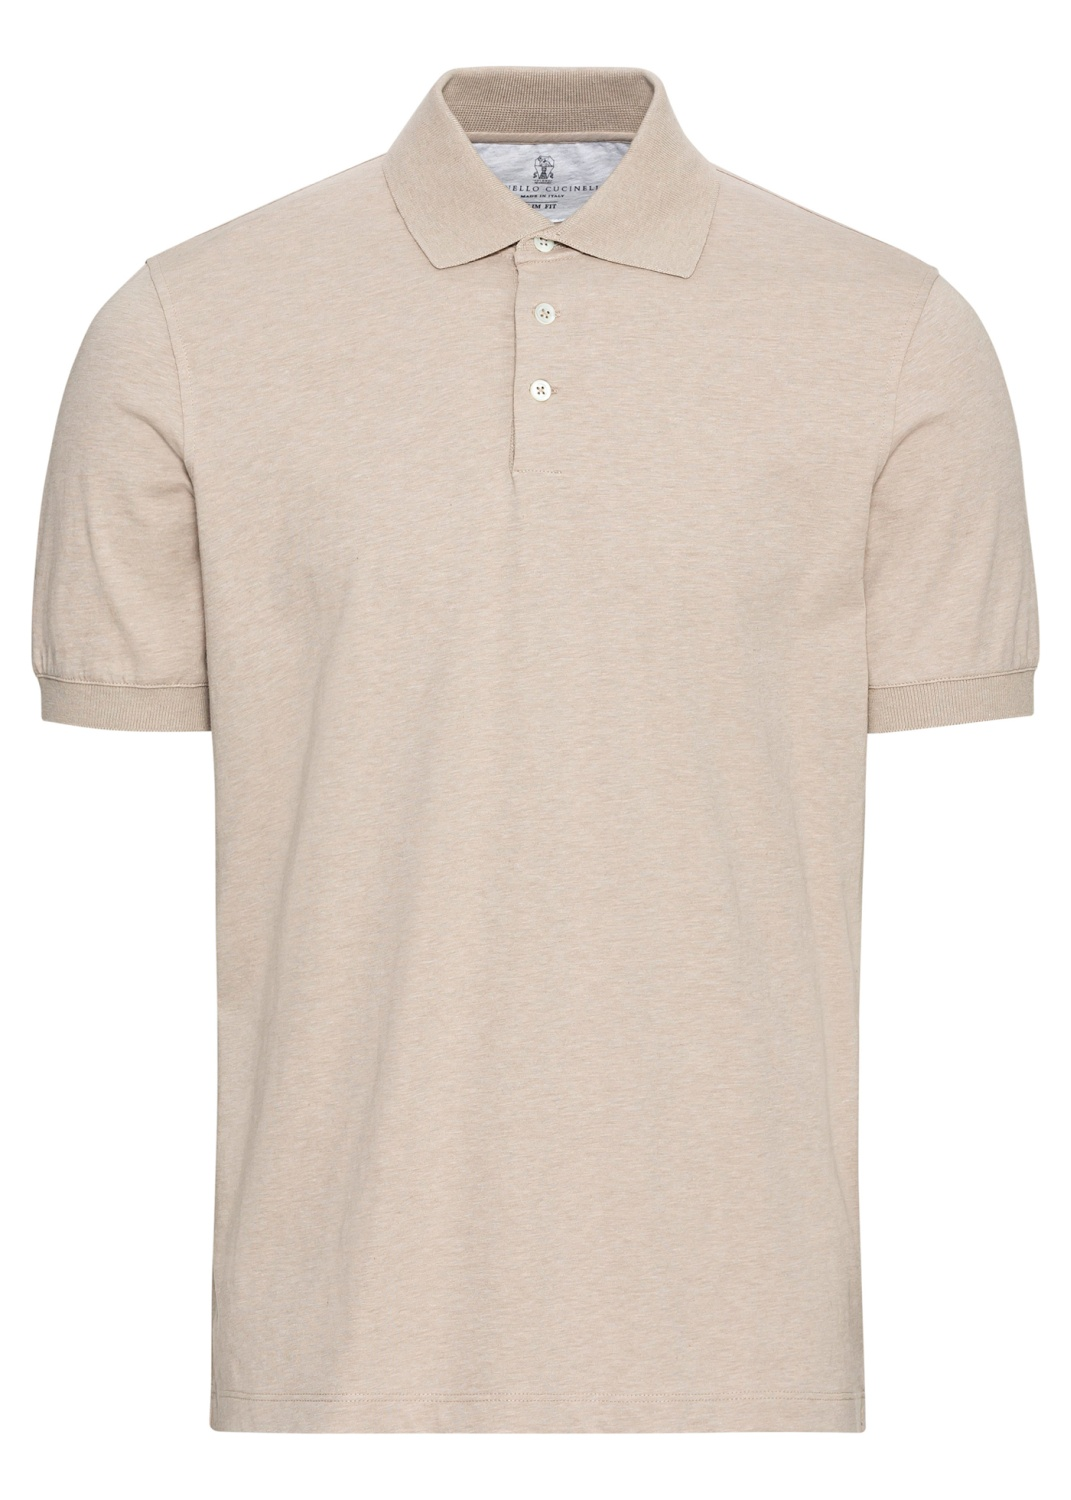 Washed Cotton Polo image number 0